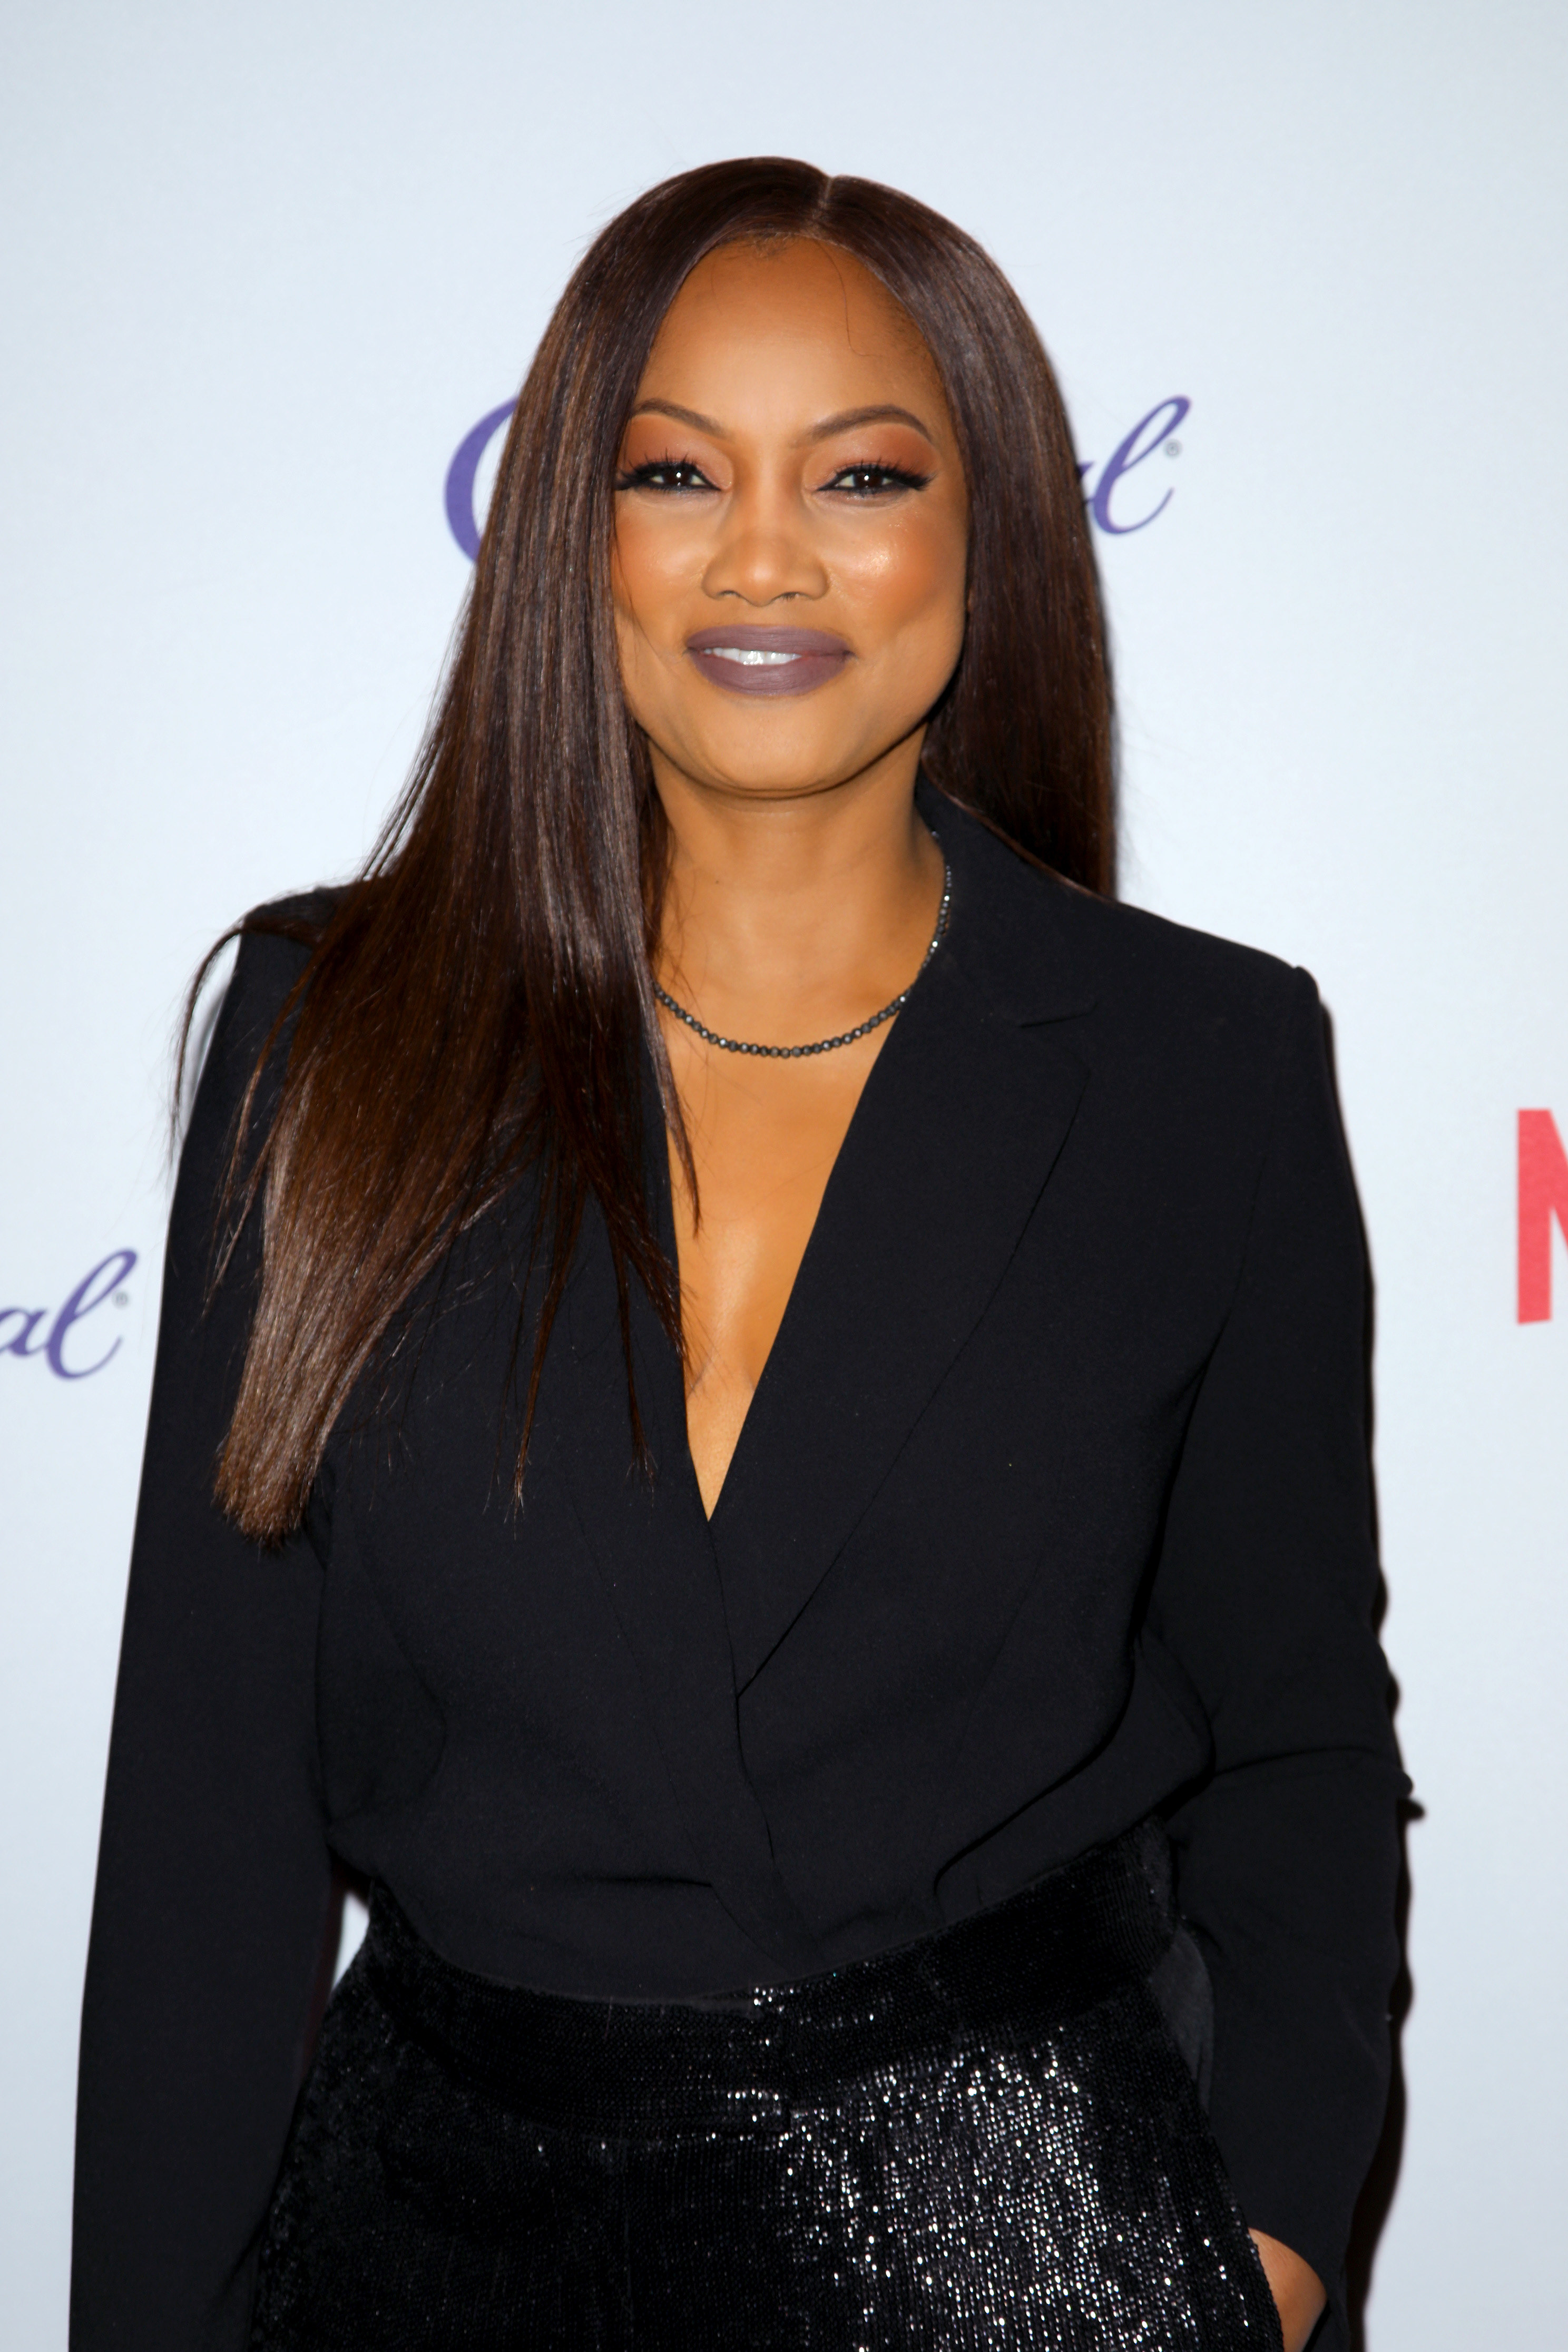 Garcelle wearing a dark outfit posing at an event